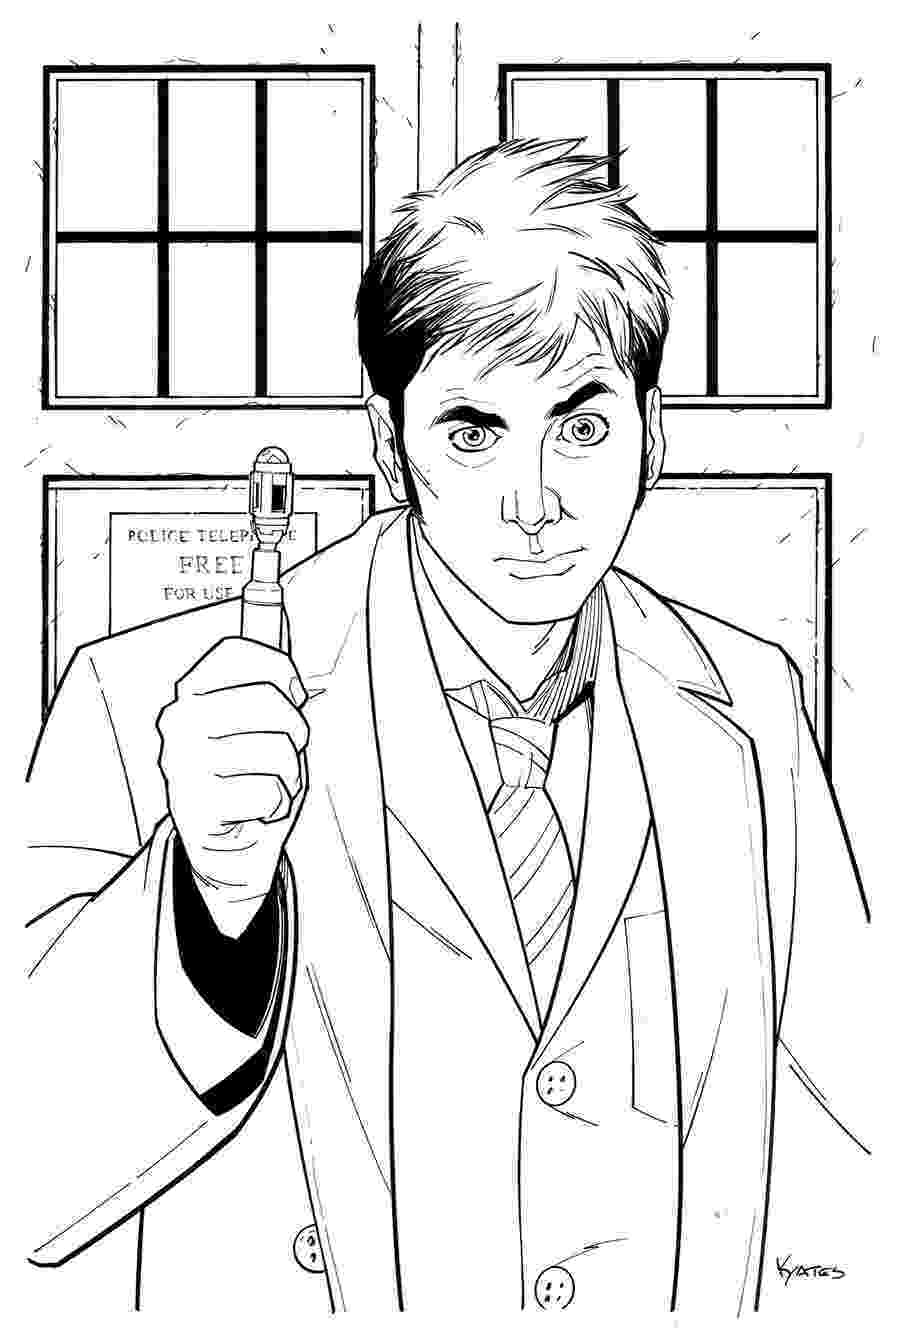 doctor who tardis coloring pages dr who doodle coloring pages colouring adult detailed who pages doctor tardis coloring